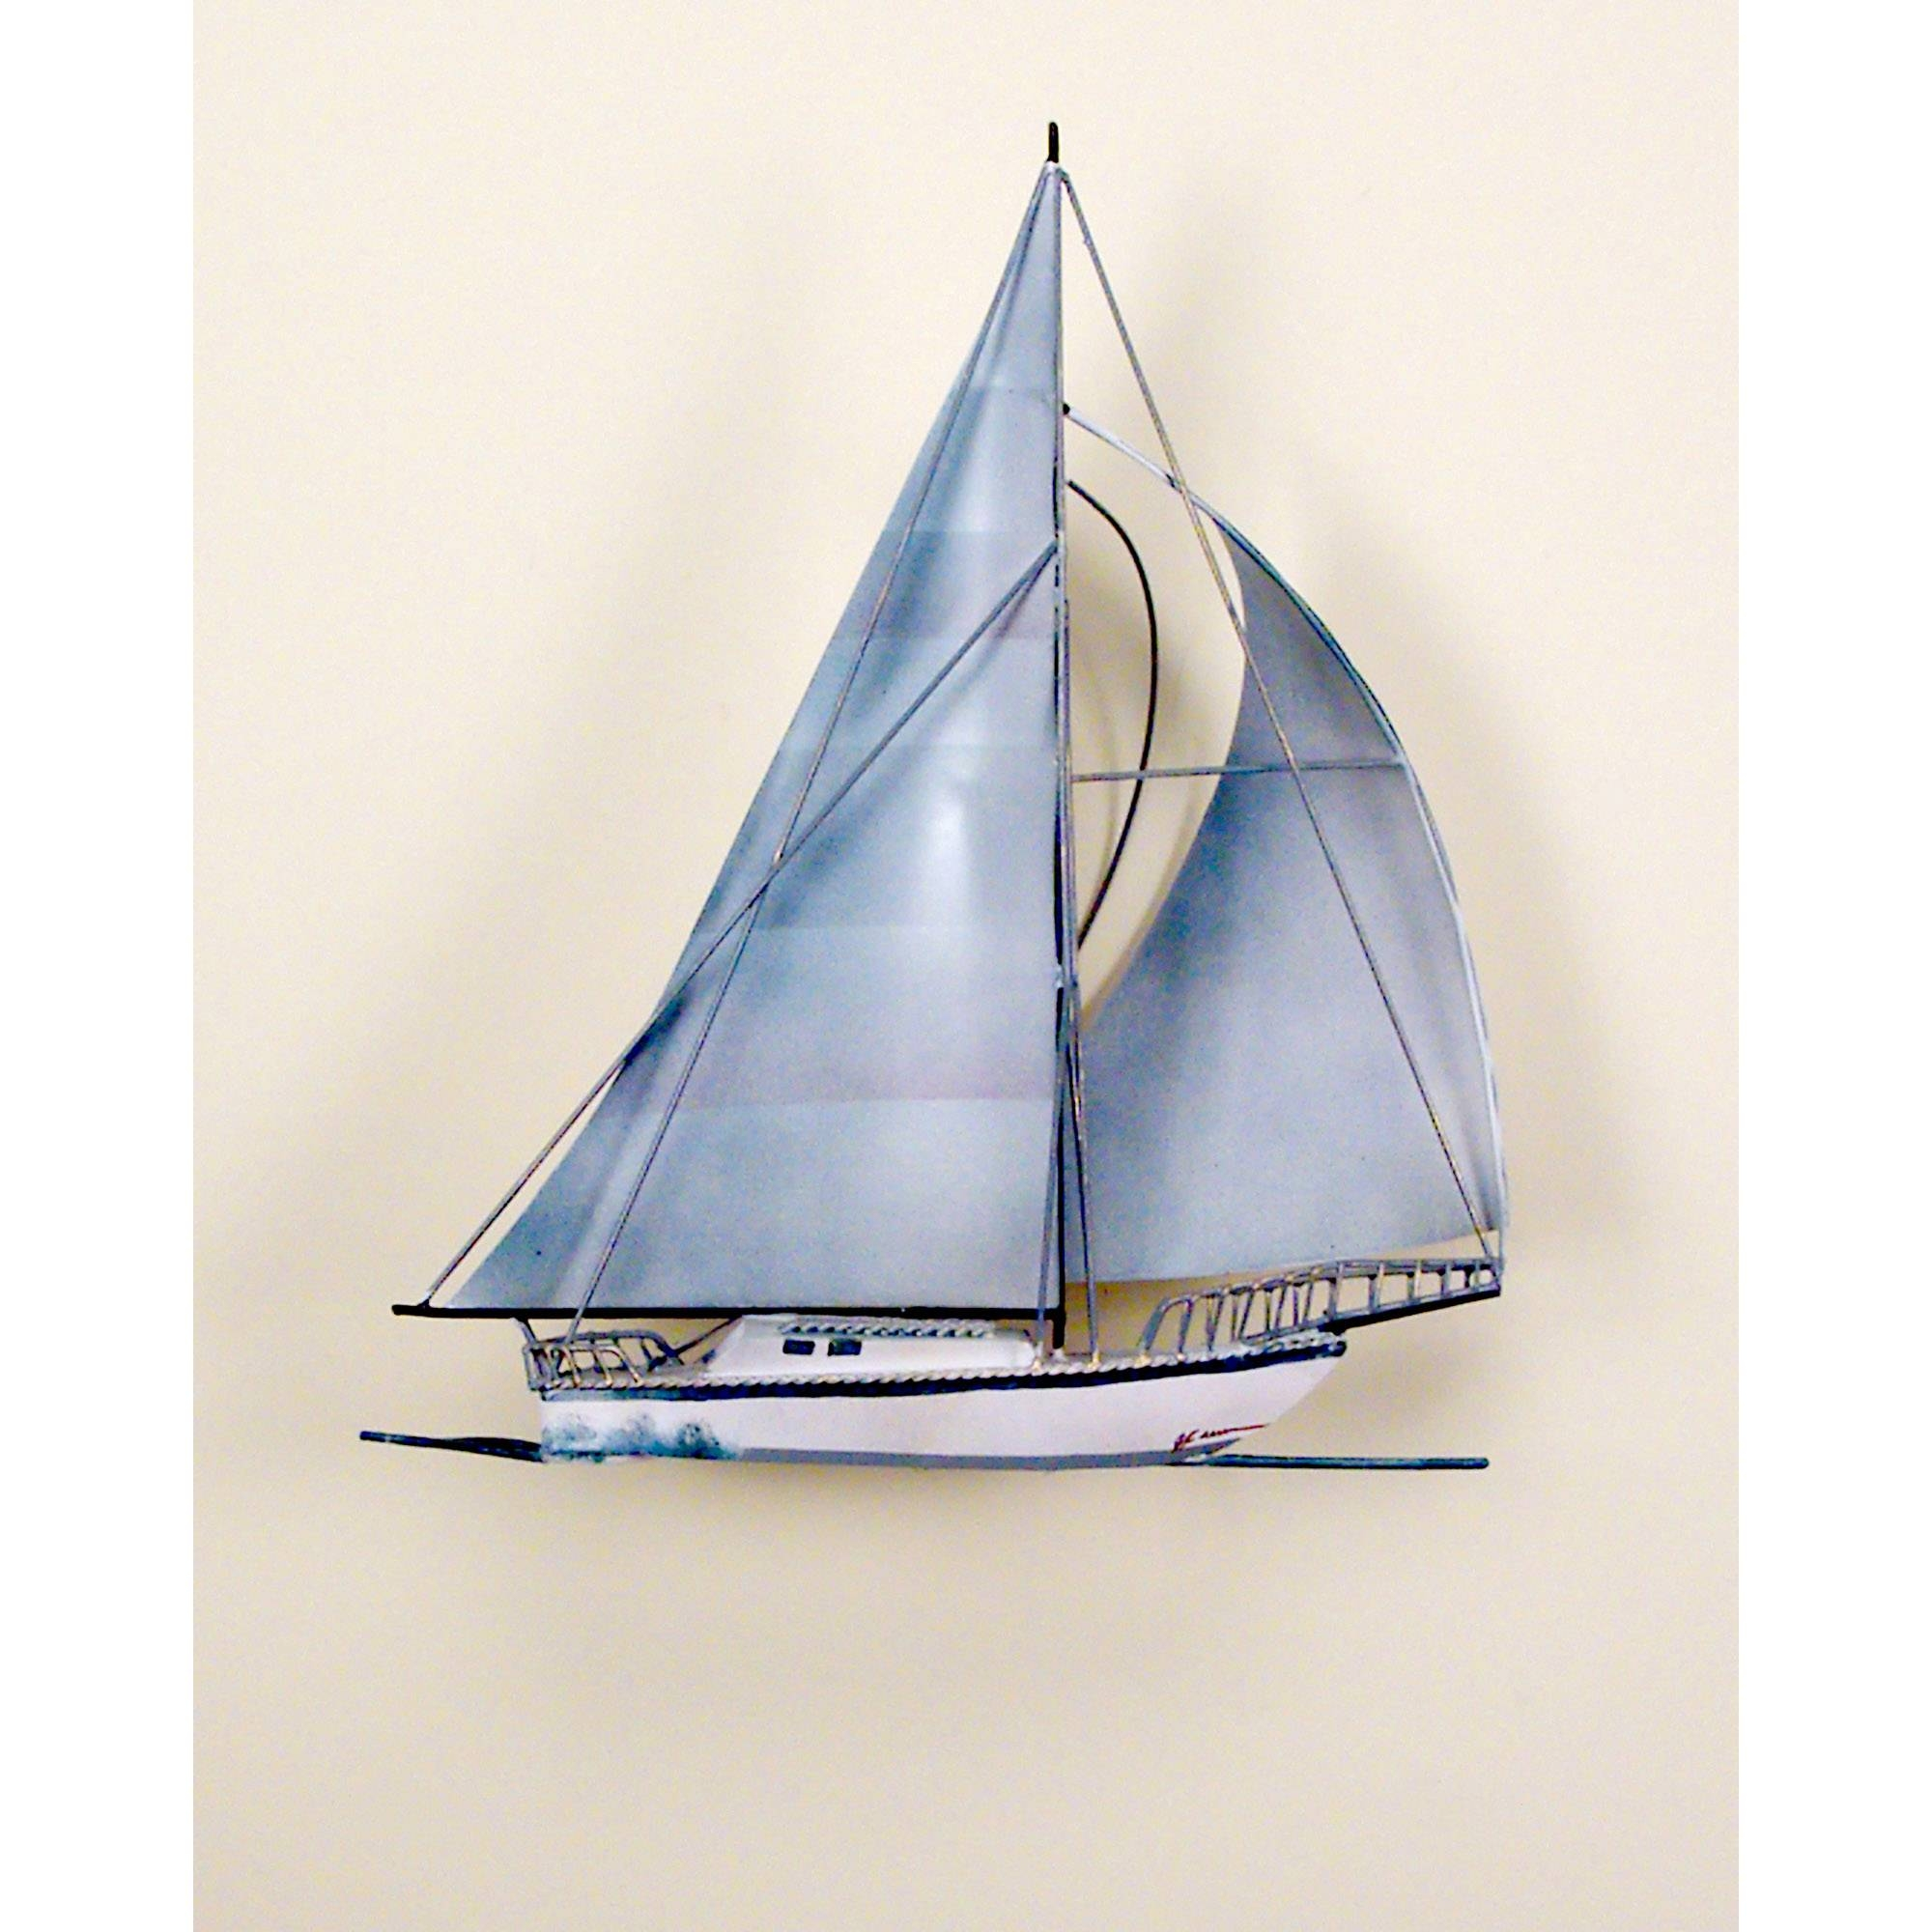 Windjamer Sailboat, Single, Ocean, Boat, Nautical, Sailing Intended For Best And Newest Metal Wall Art Boats (View 8 of 20)